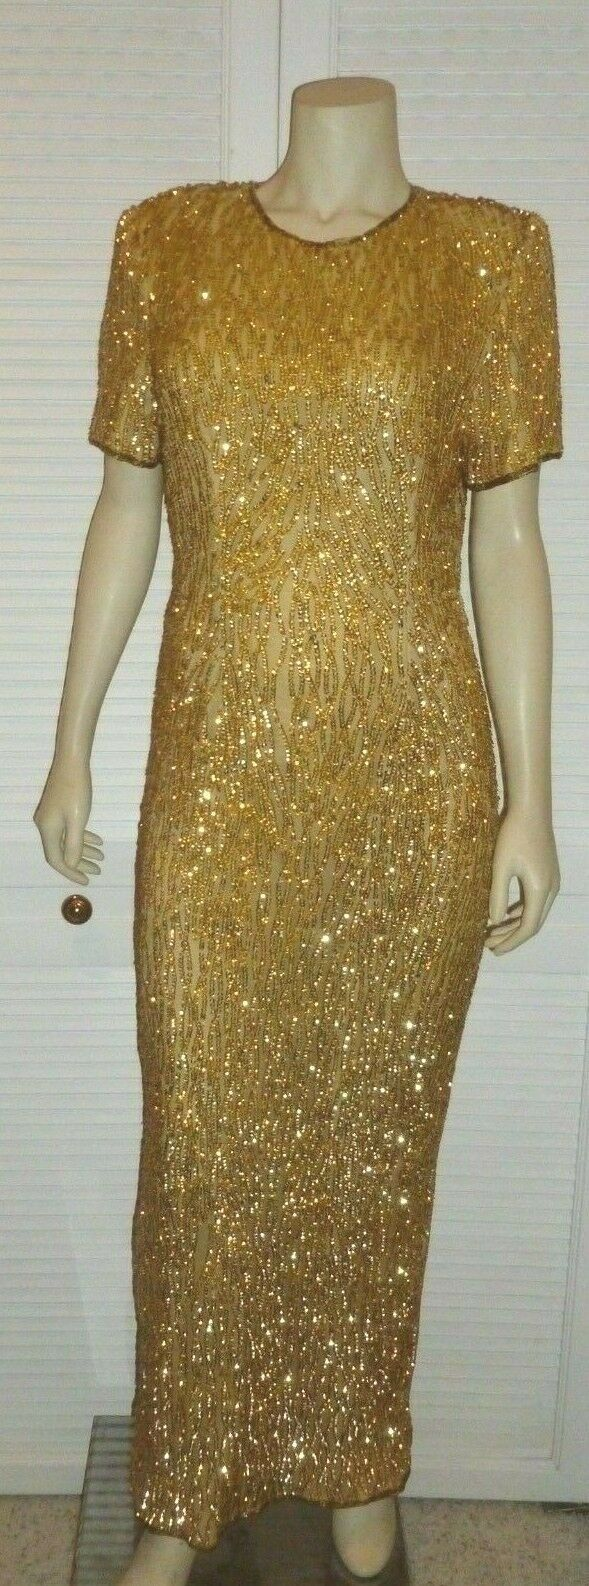 Designer STENAY DRESS GOWN GOWN GOWN Size 14 gold Sequins Beads Silk Shell Amazing Detail b653dc